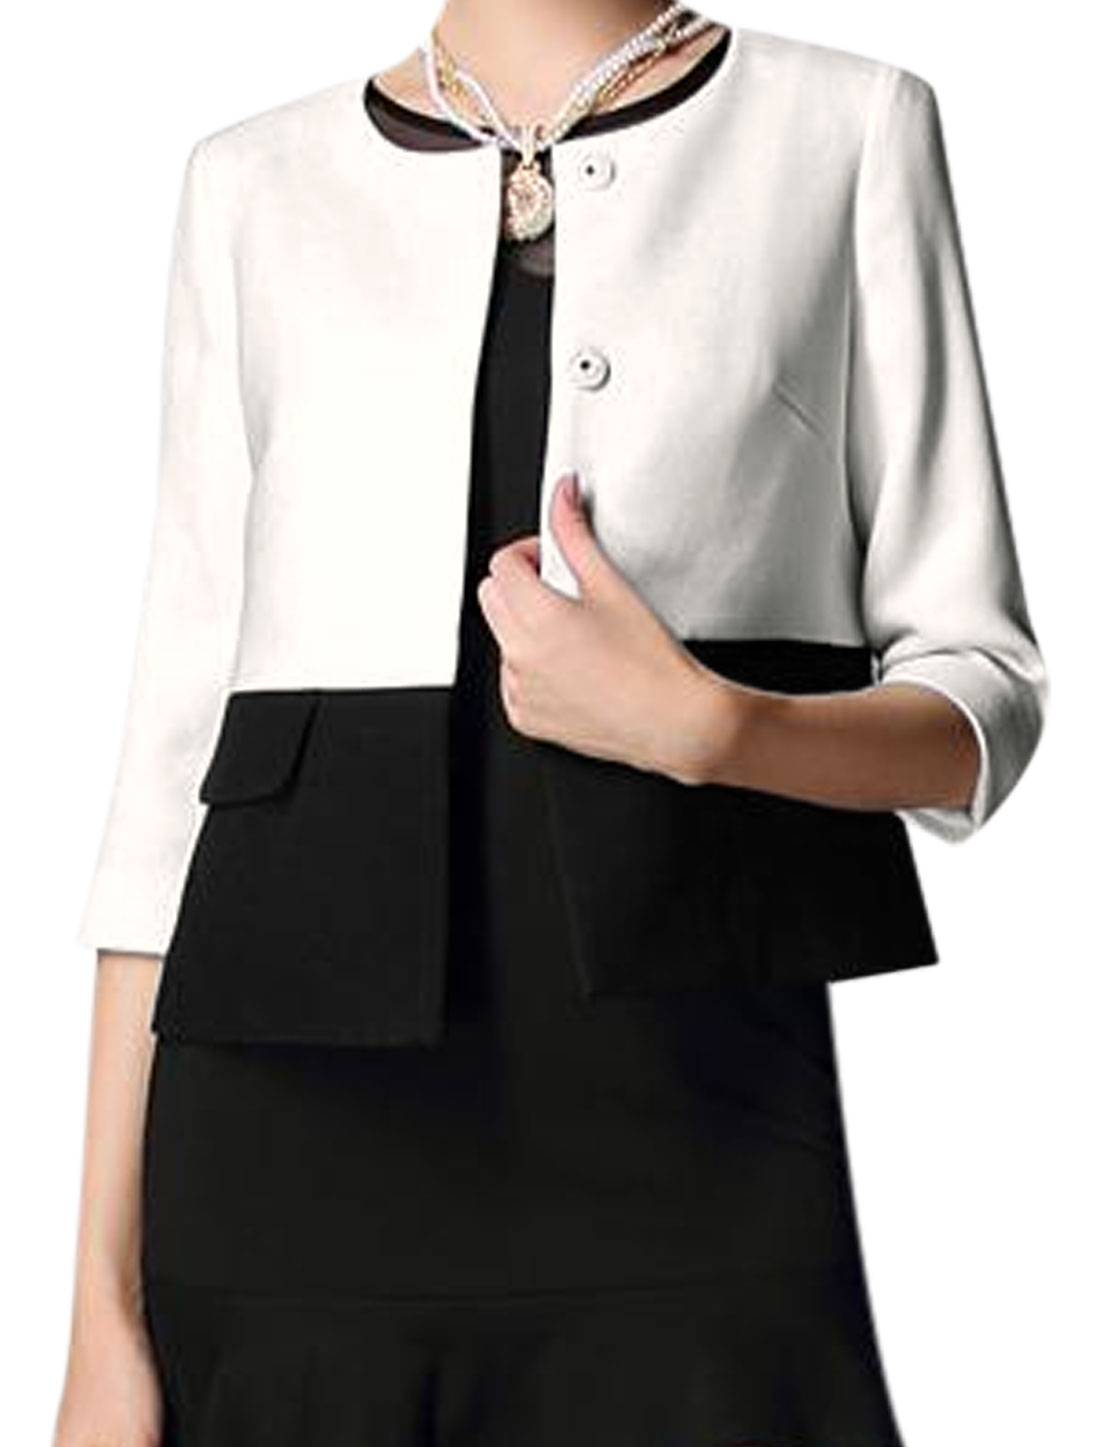 Ladies Black White 3/4 Sleeves Round Neck Single Breasted Color Block Jacket S